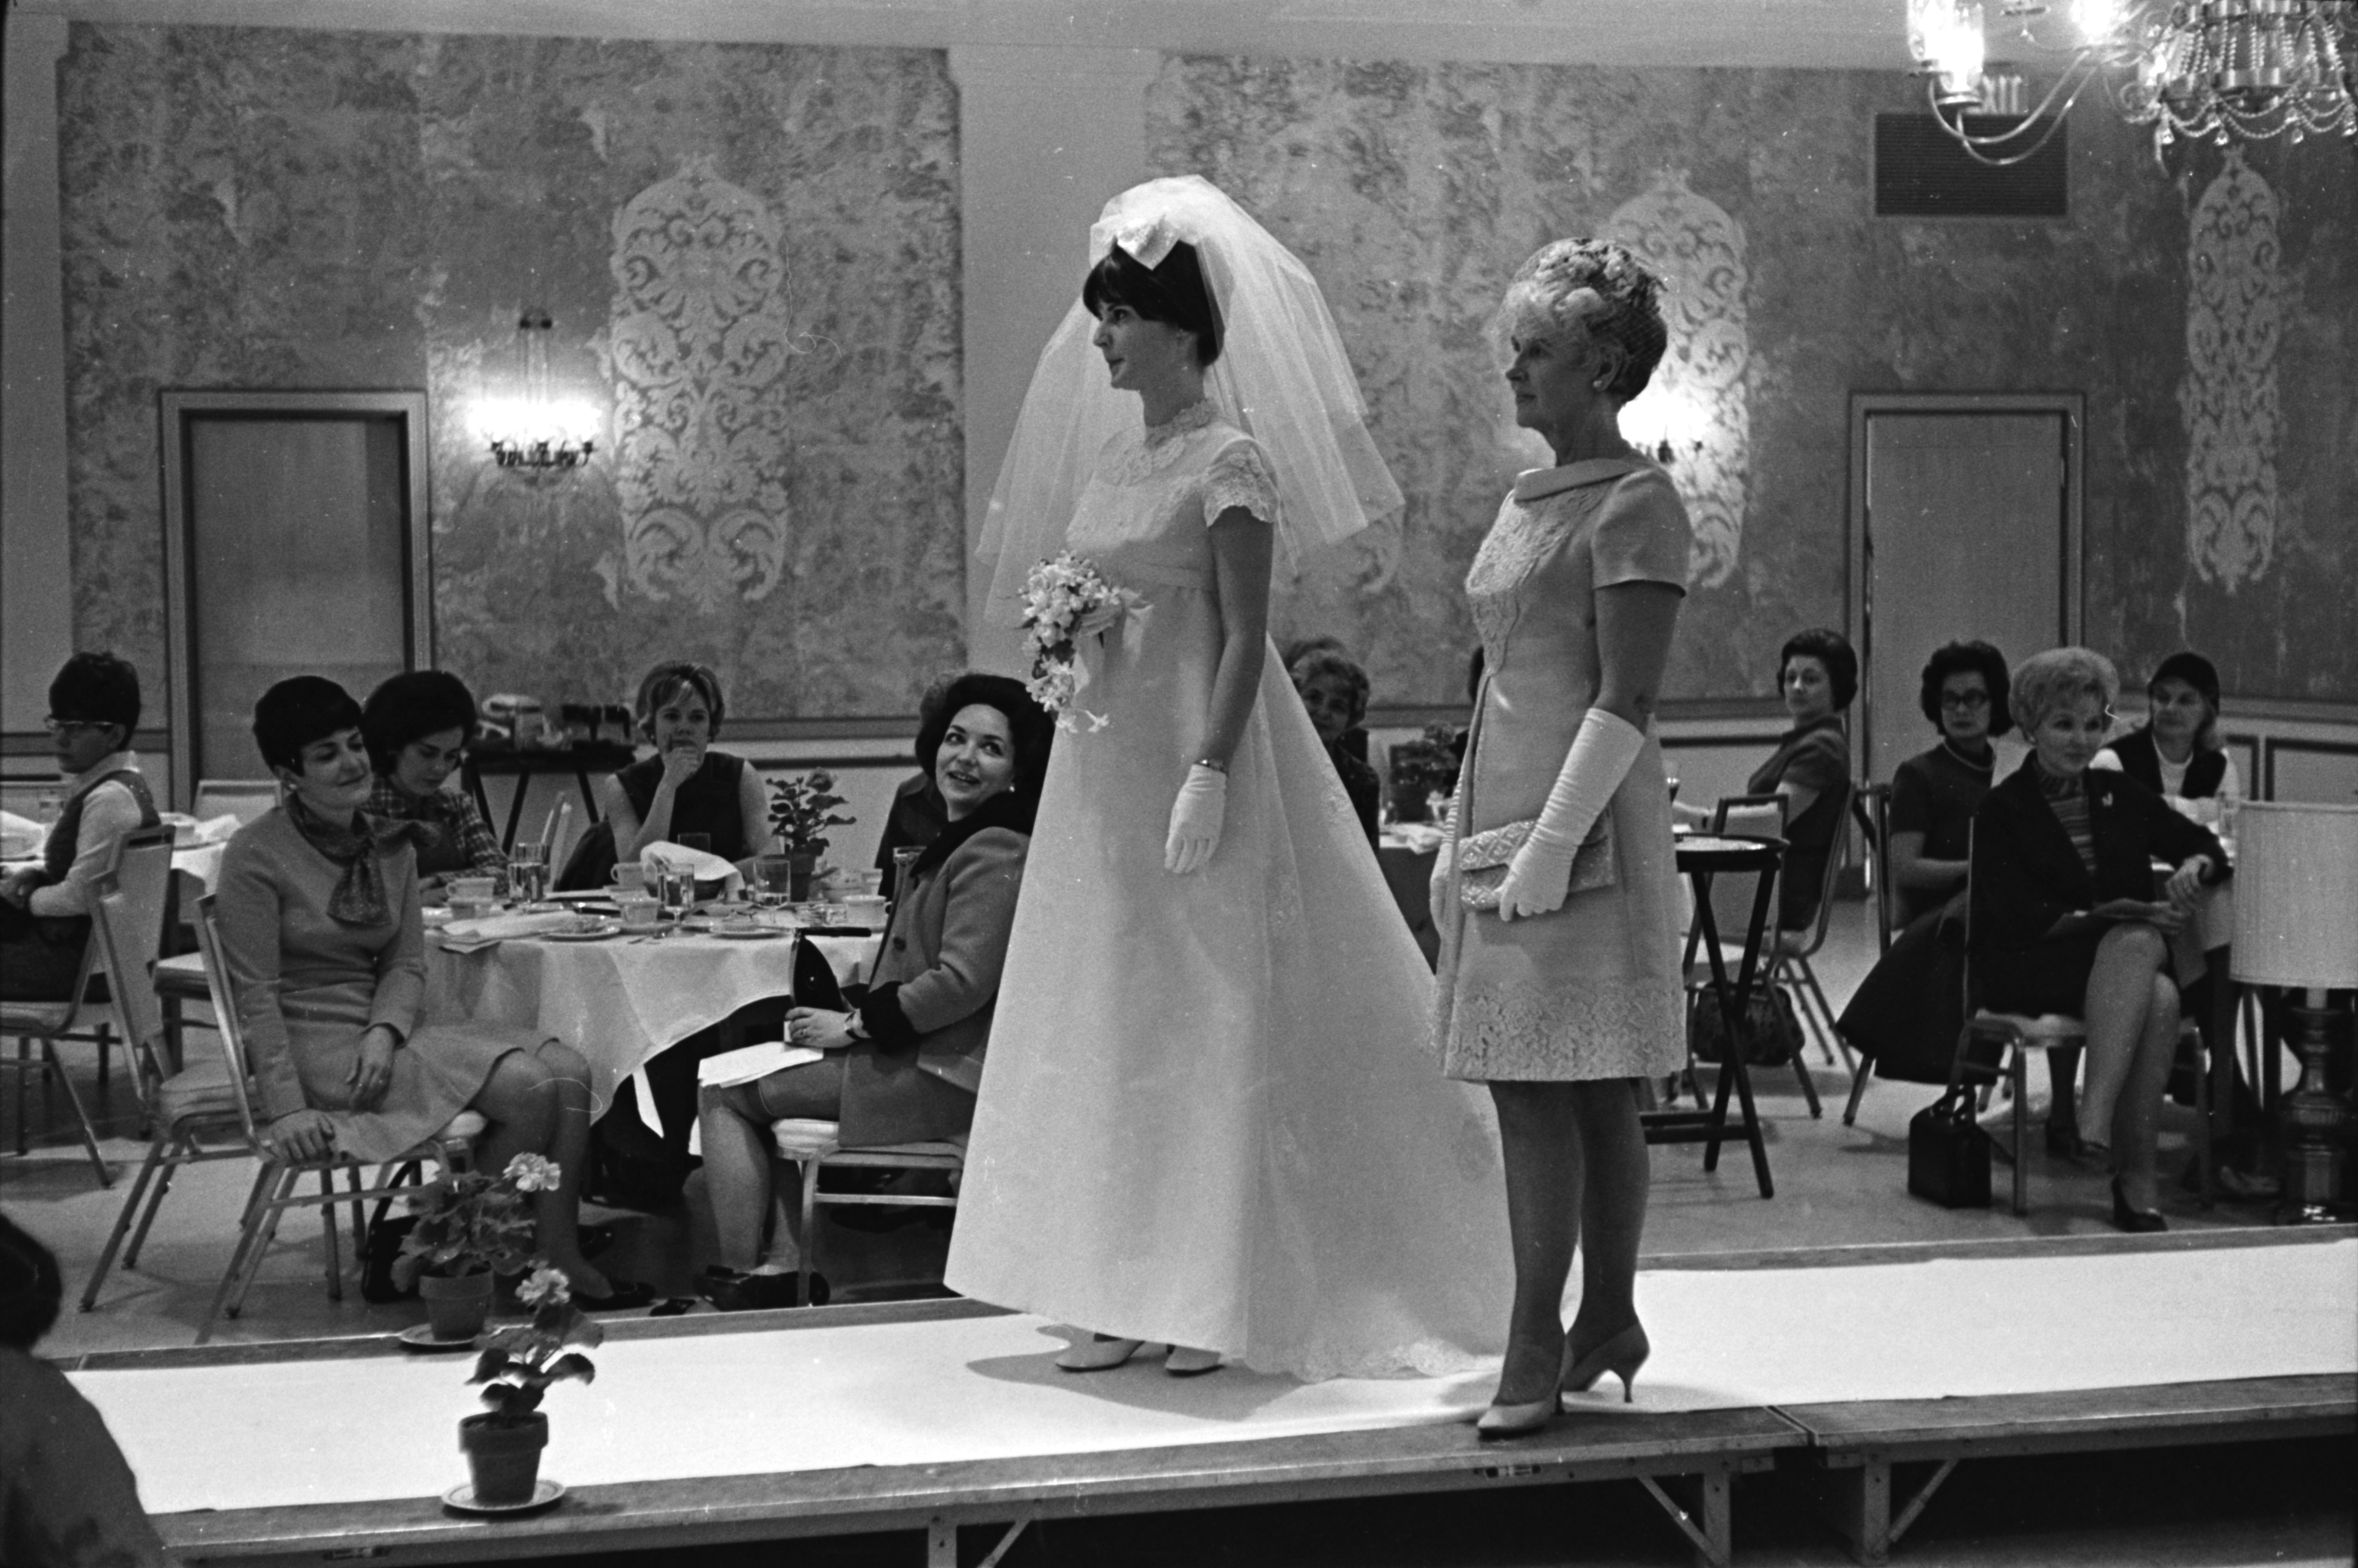 Mary Hoy models a wedding dress at the March of Dimes Fashion Show, February 1969 image